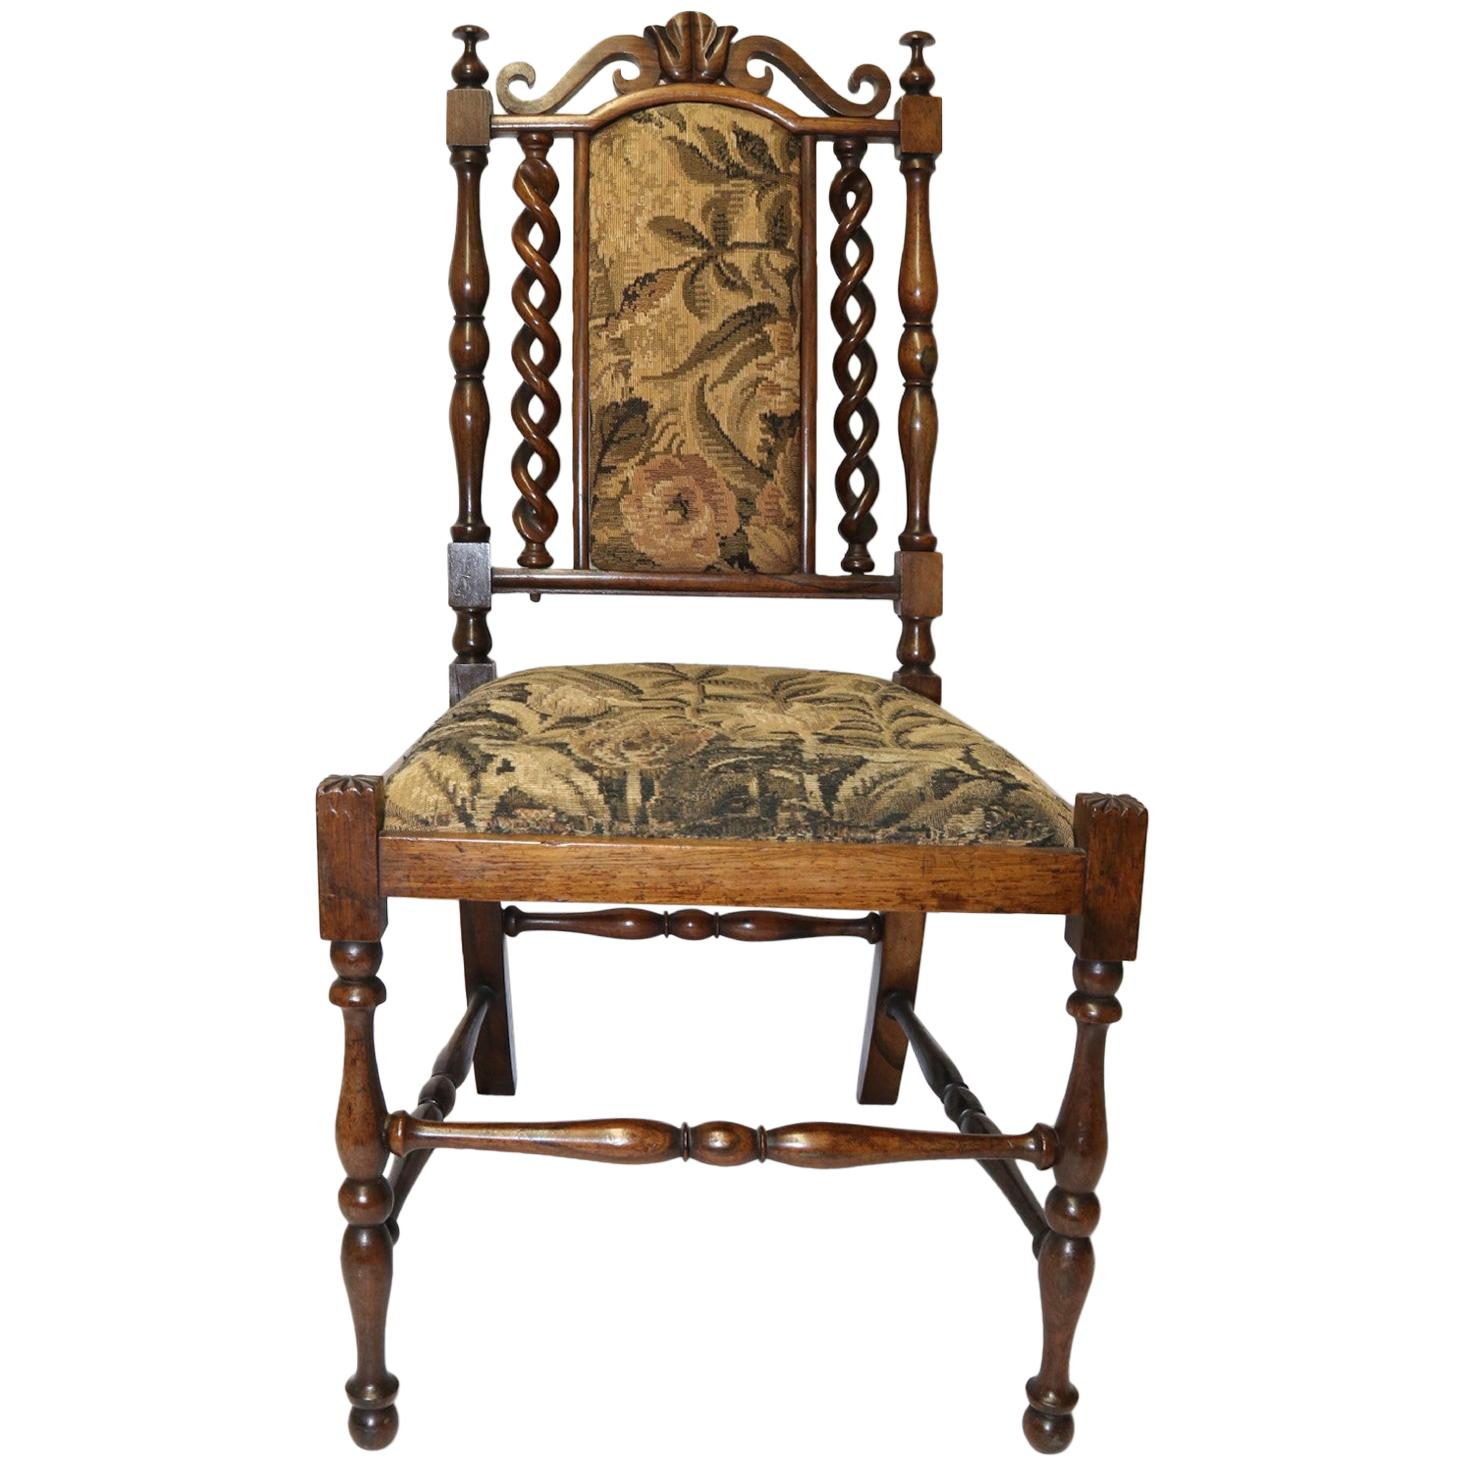 Antique And Vintage Secretaires 1495 For Sale At 1stdibs >> Thomas Chippendale Furniture Chairs Sofas Storage Cabinets More